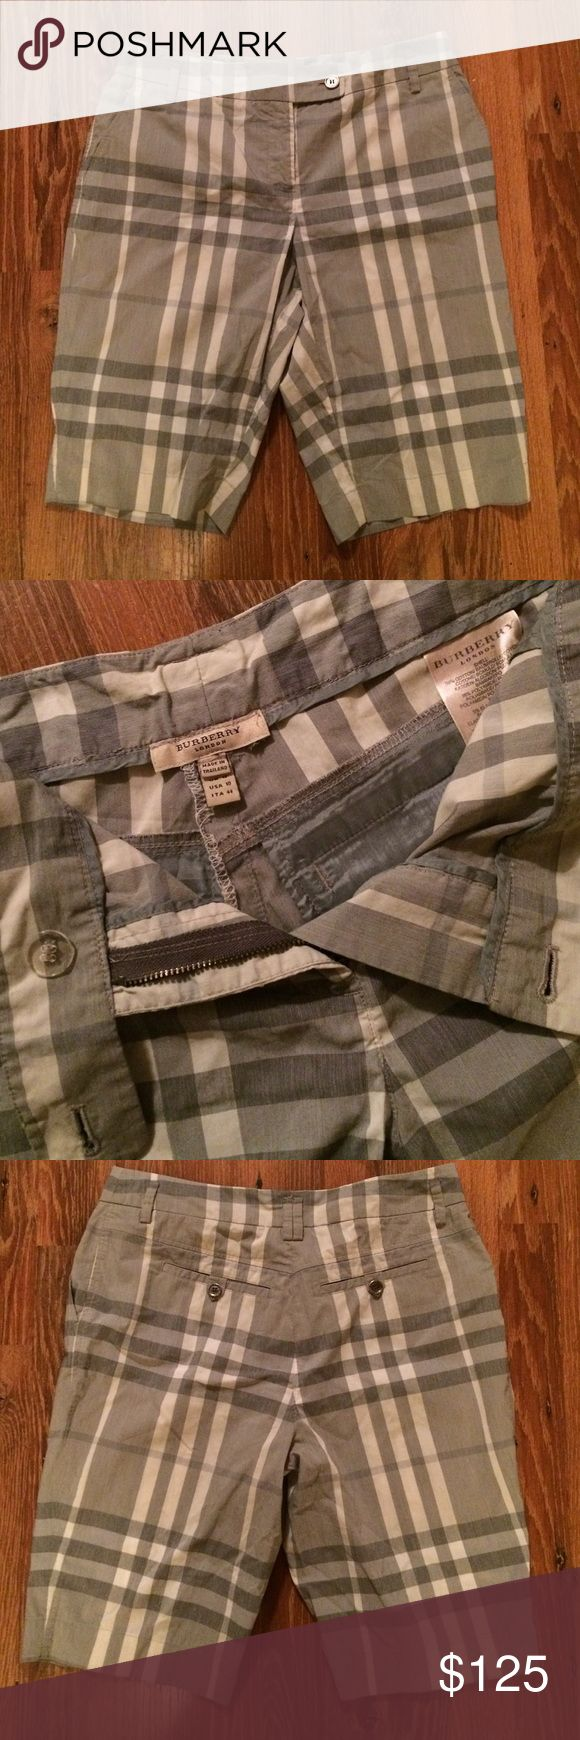 Burberry Plaid Shorts These are gorgeous Burberry shorts in gray. Lightweight soft, absolutely beautiful.  Like new, worn once.   Size 10.   I will consider reasonable offers. Burberry Shorts